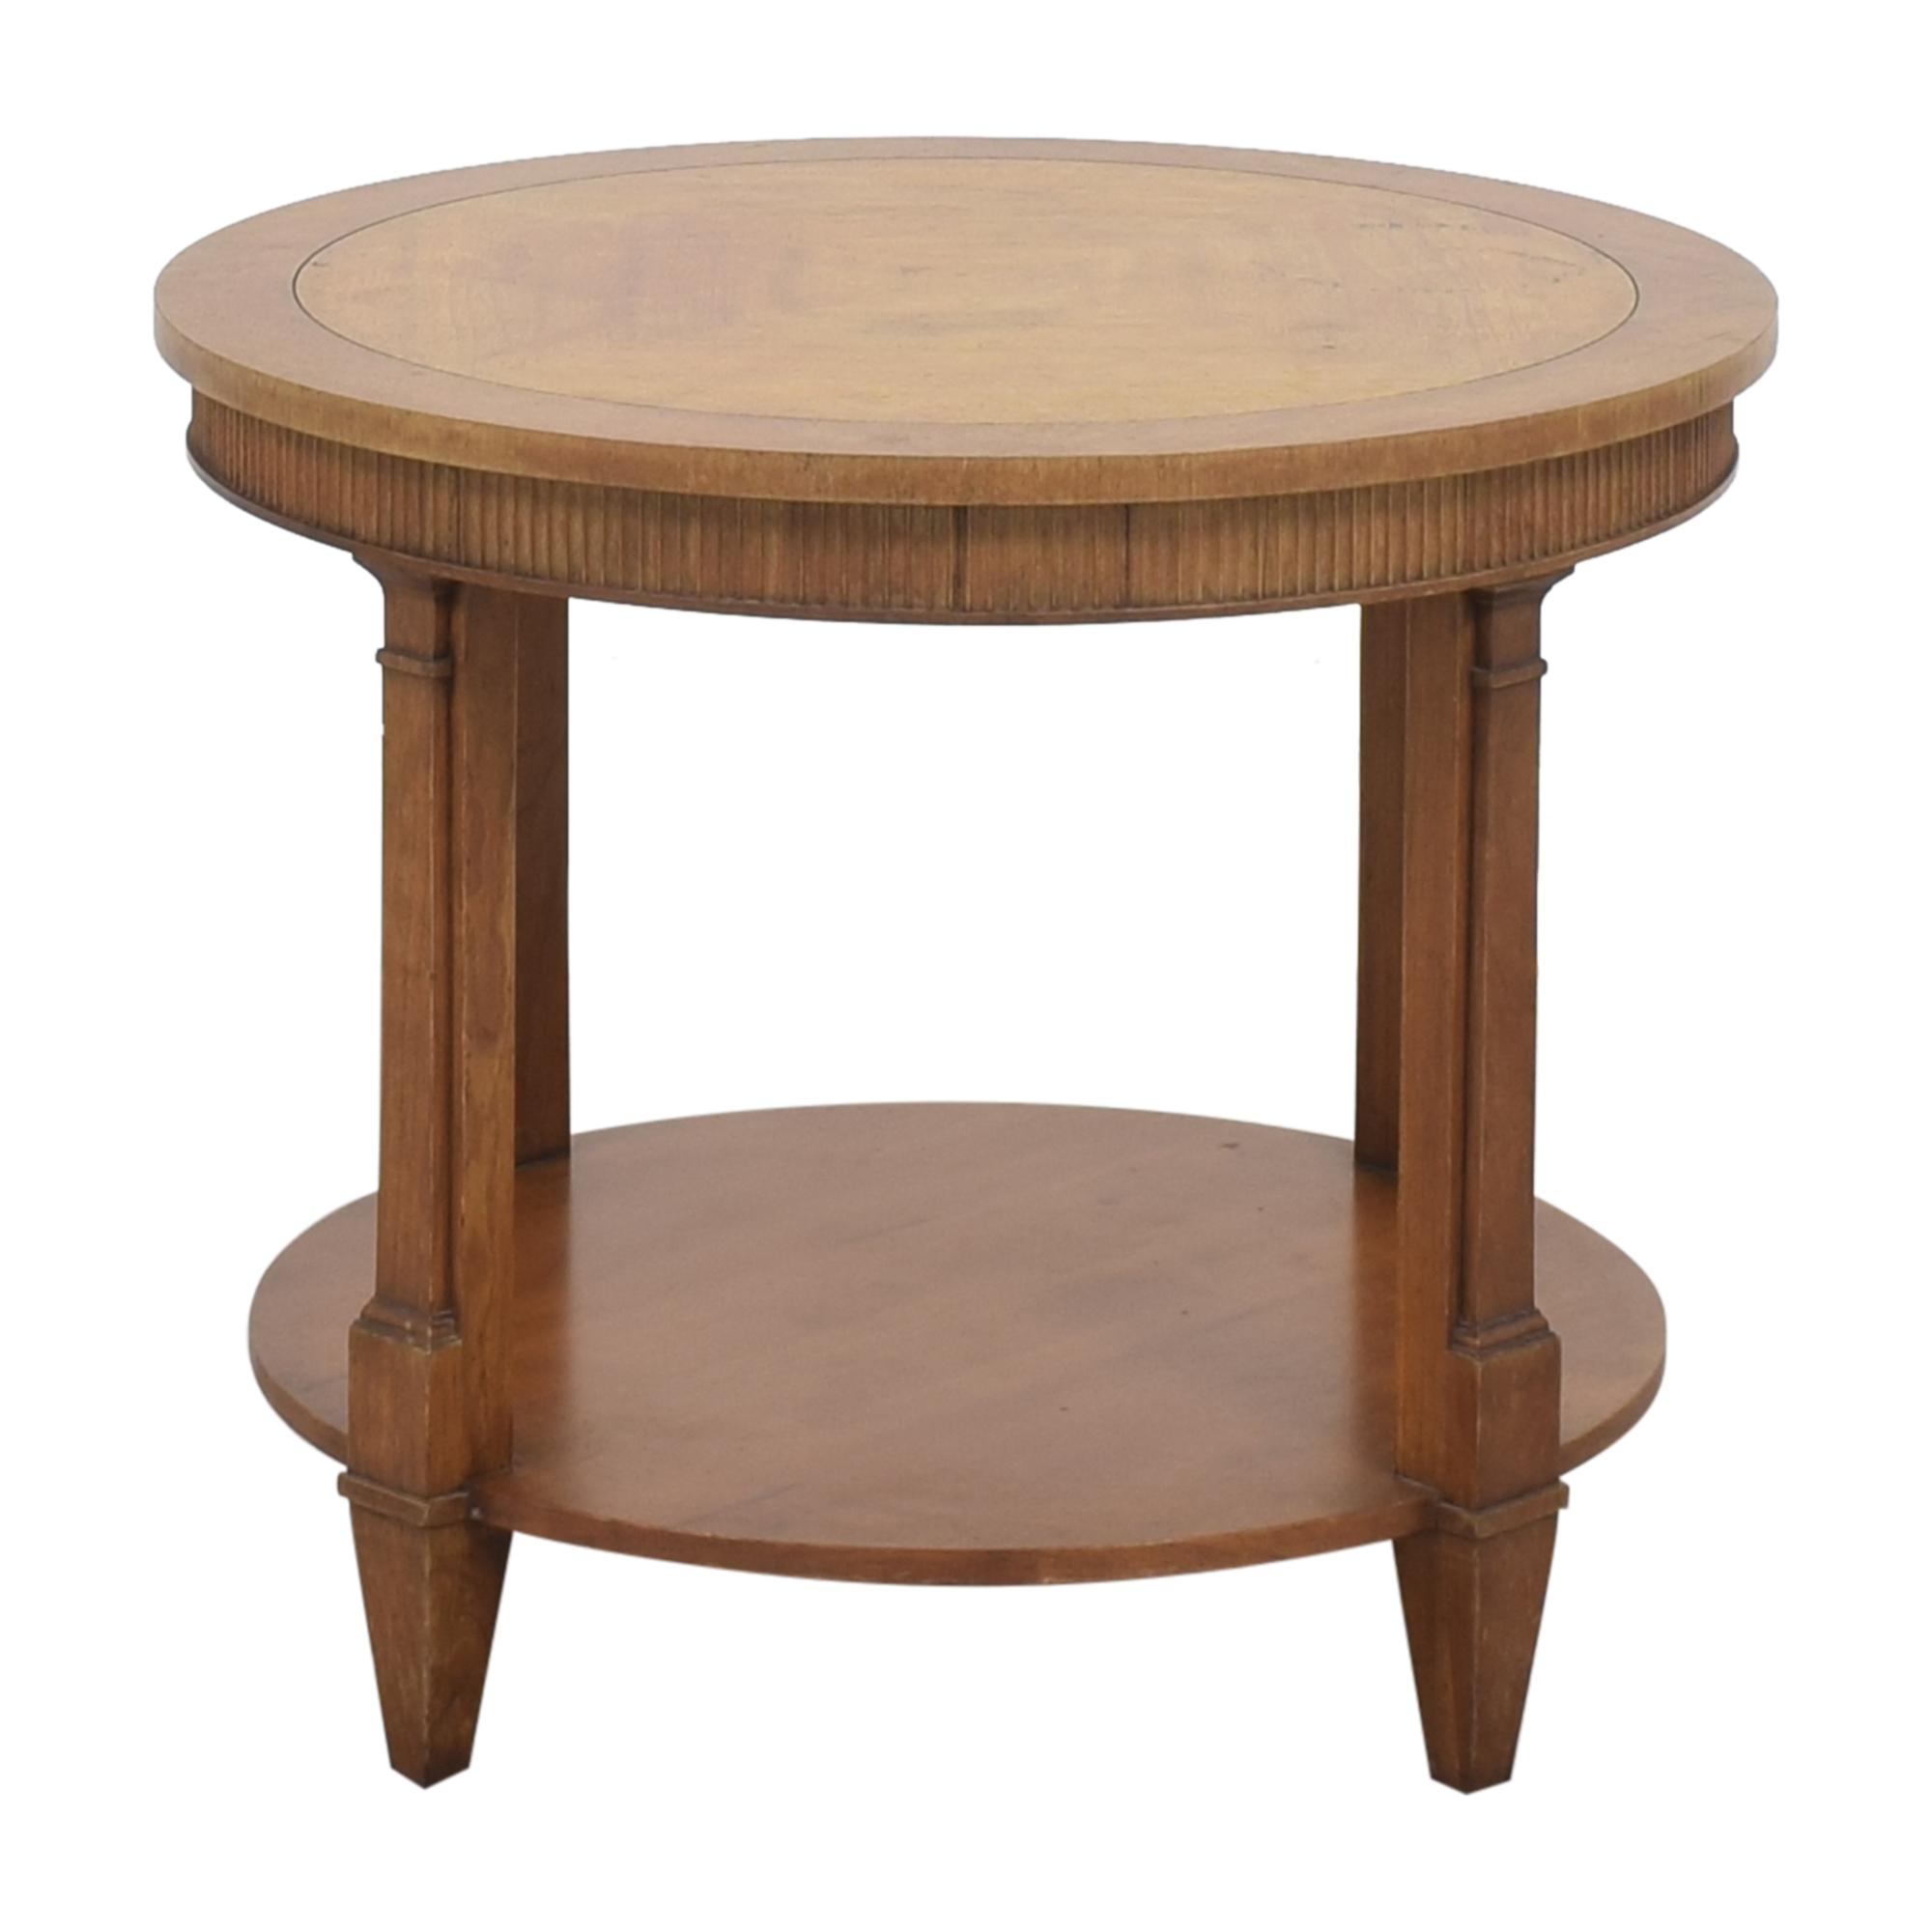 Baker Furniture Baker Furniture Round Accent Table ct